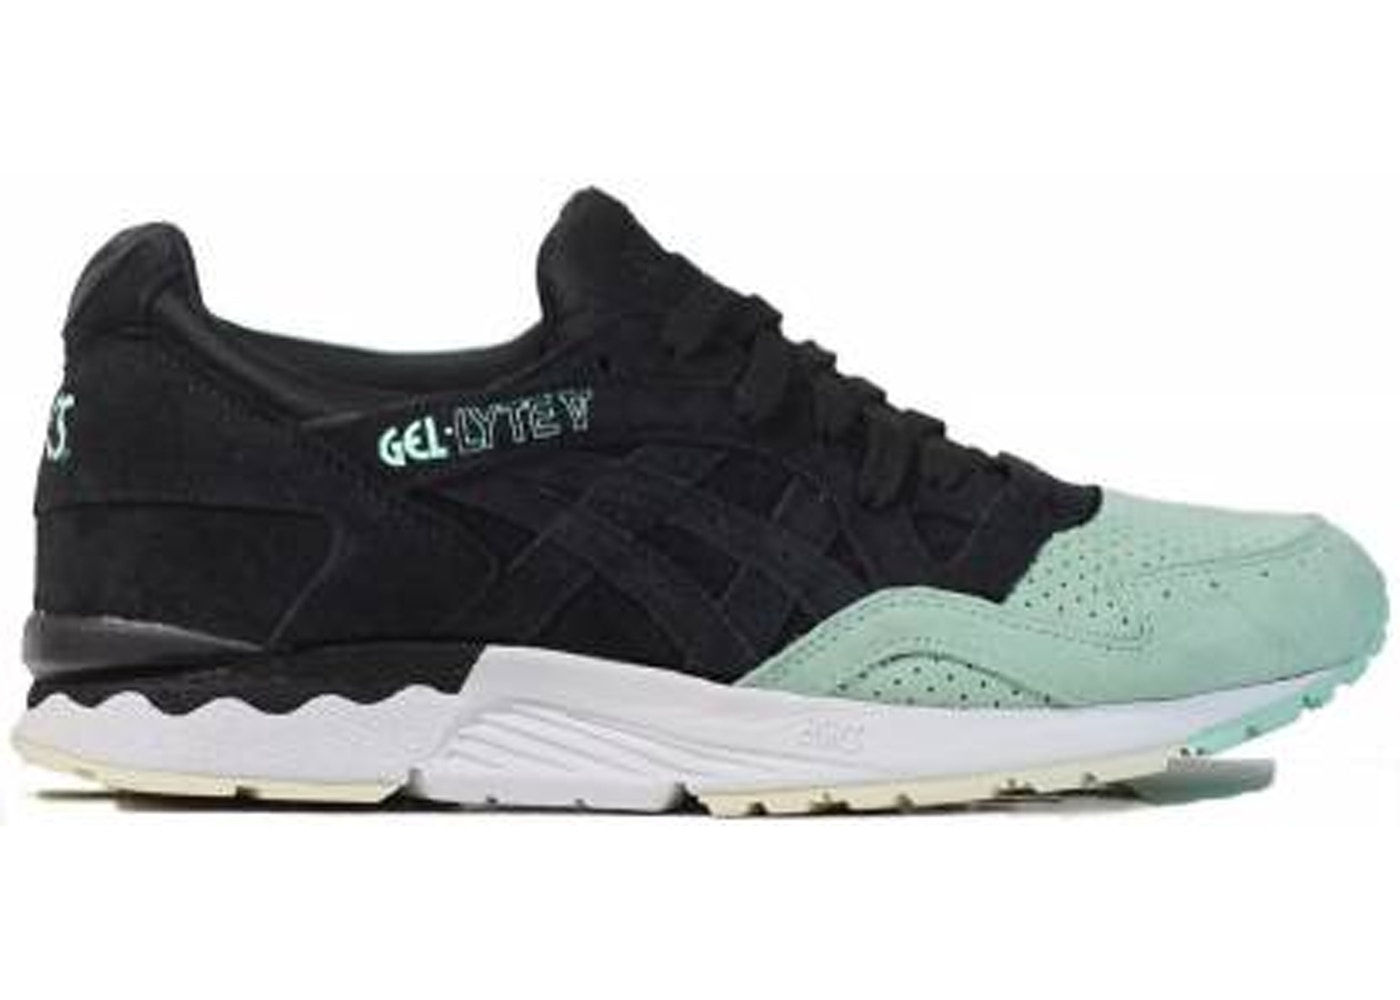 timeless design 7891e 6e1e8 ASICS Gel-Lyte V Black Mint